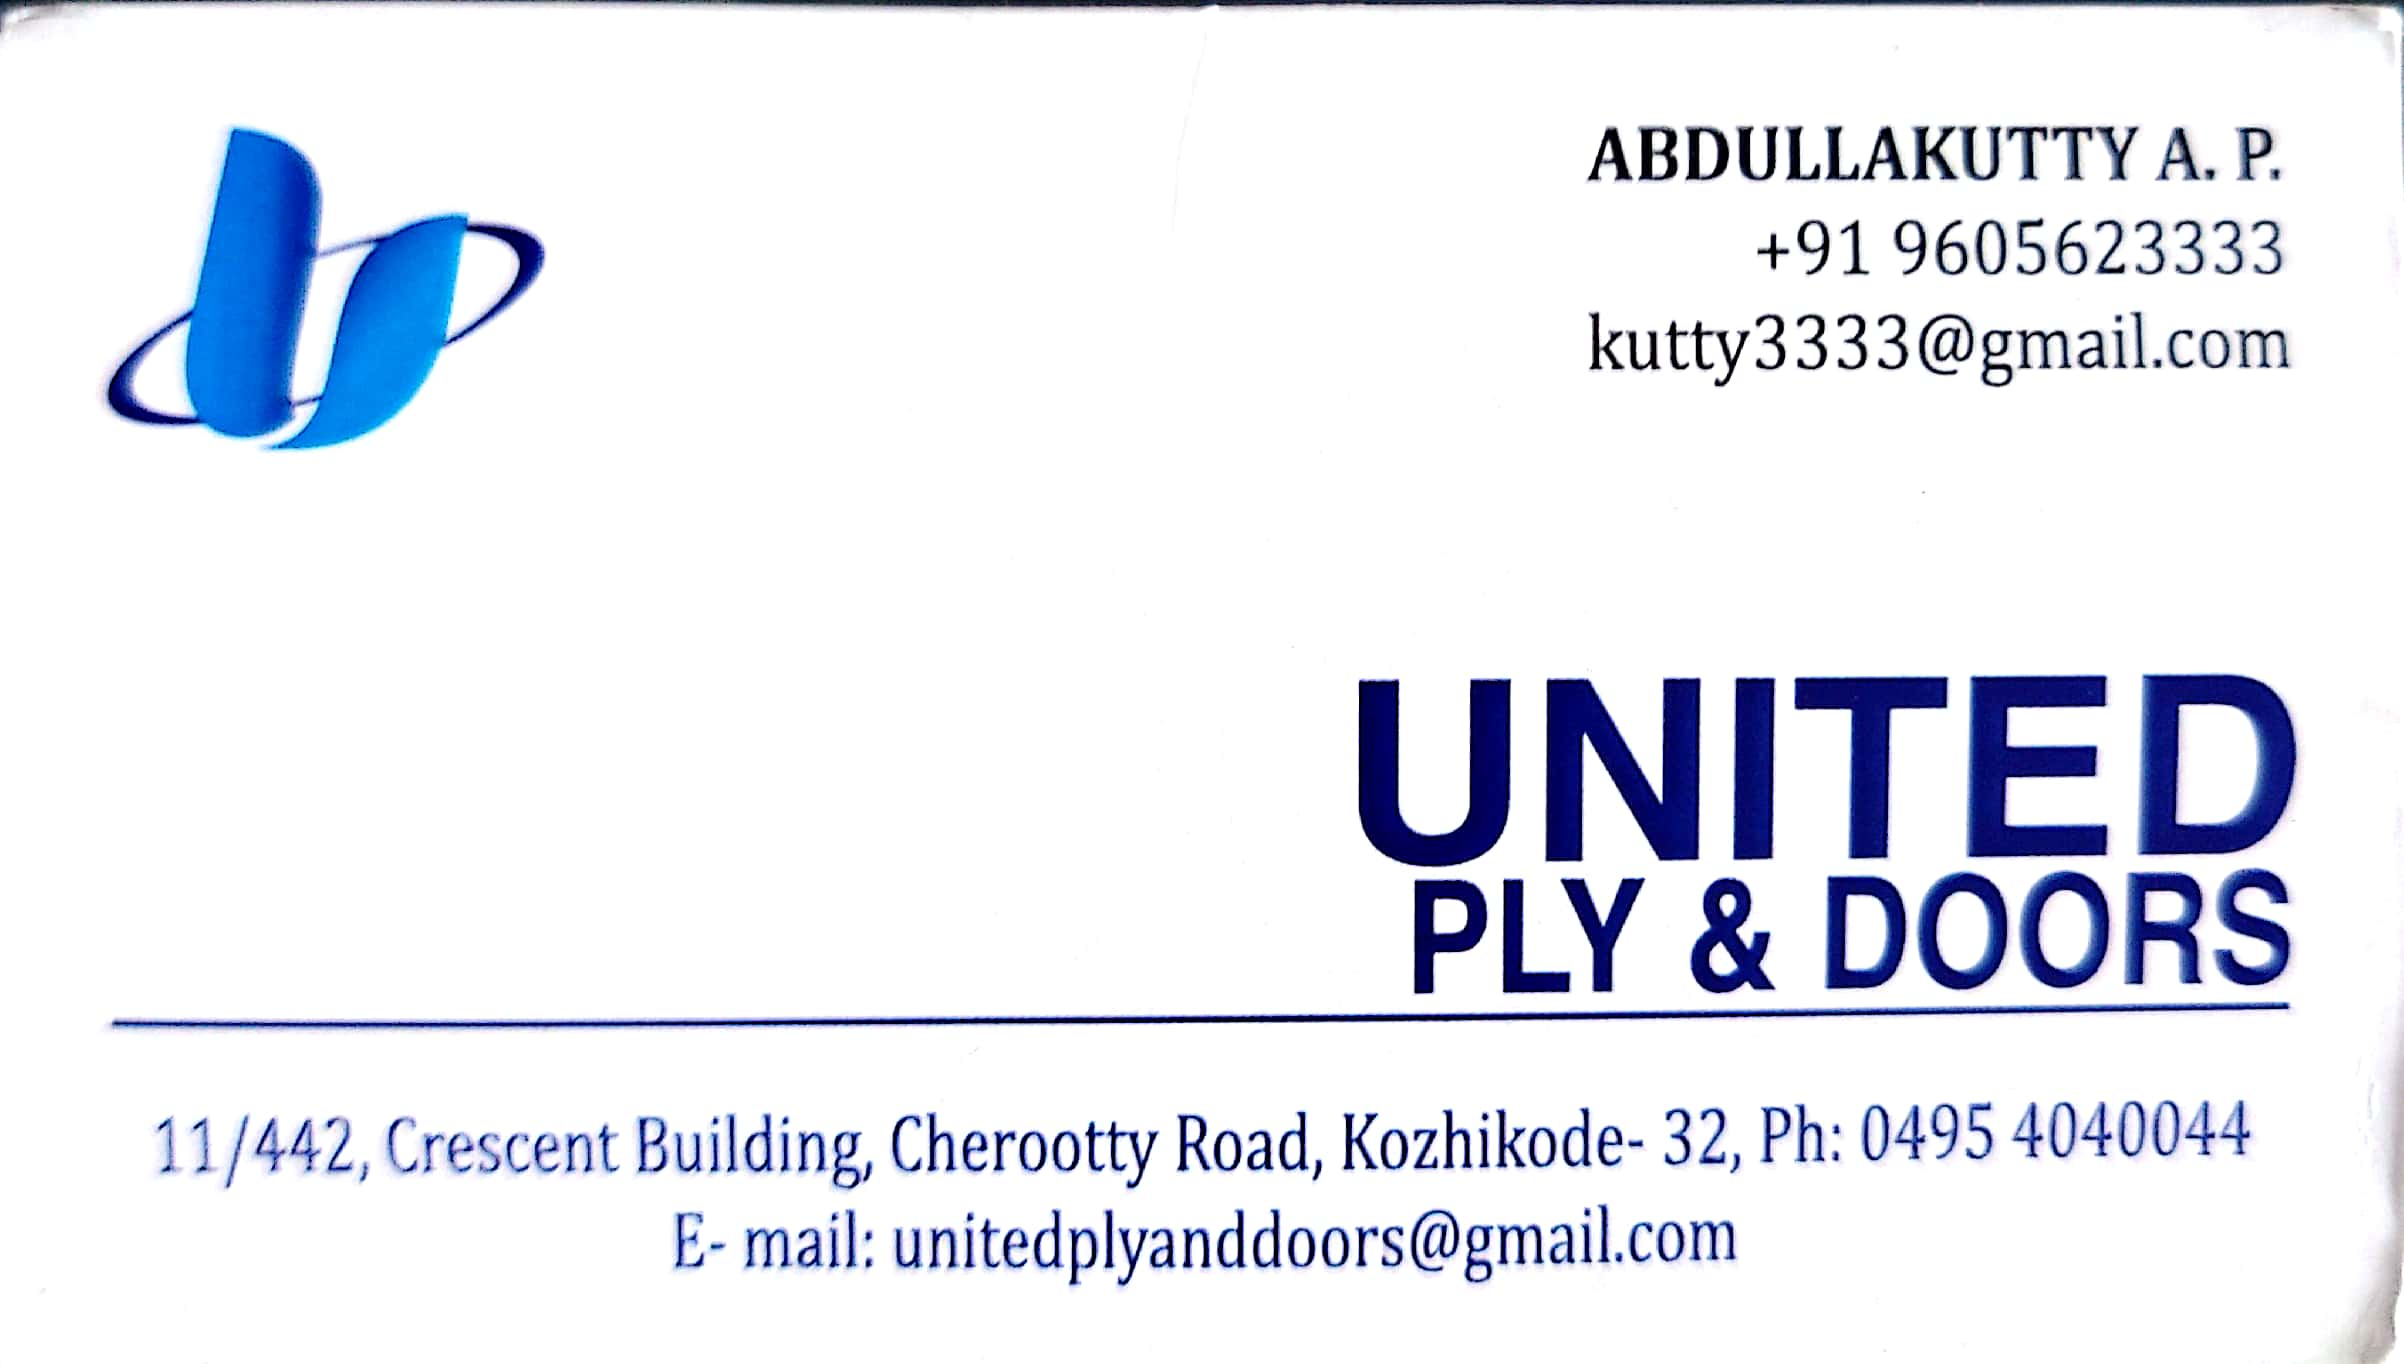 UNITED PLY AND DOORS, DOORS,  service in Kozhikode Town, Kozhikode